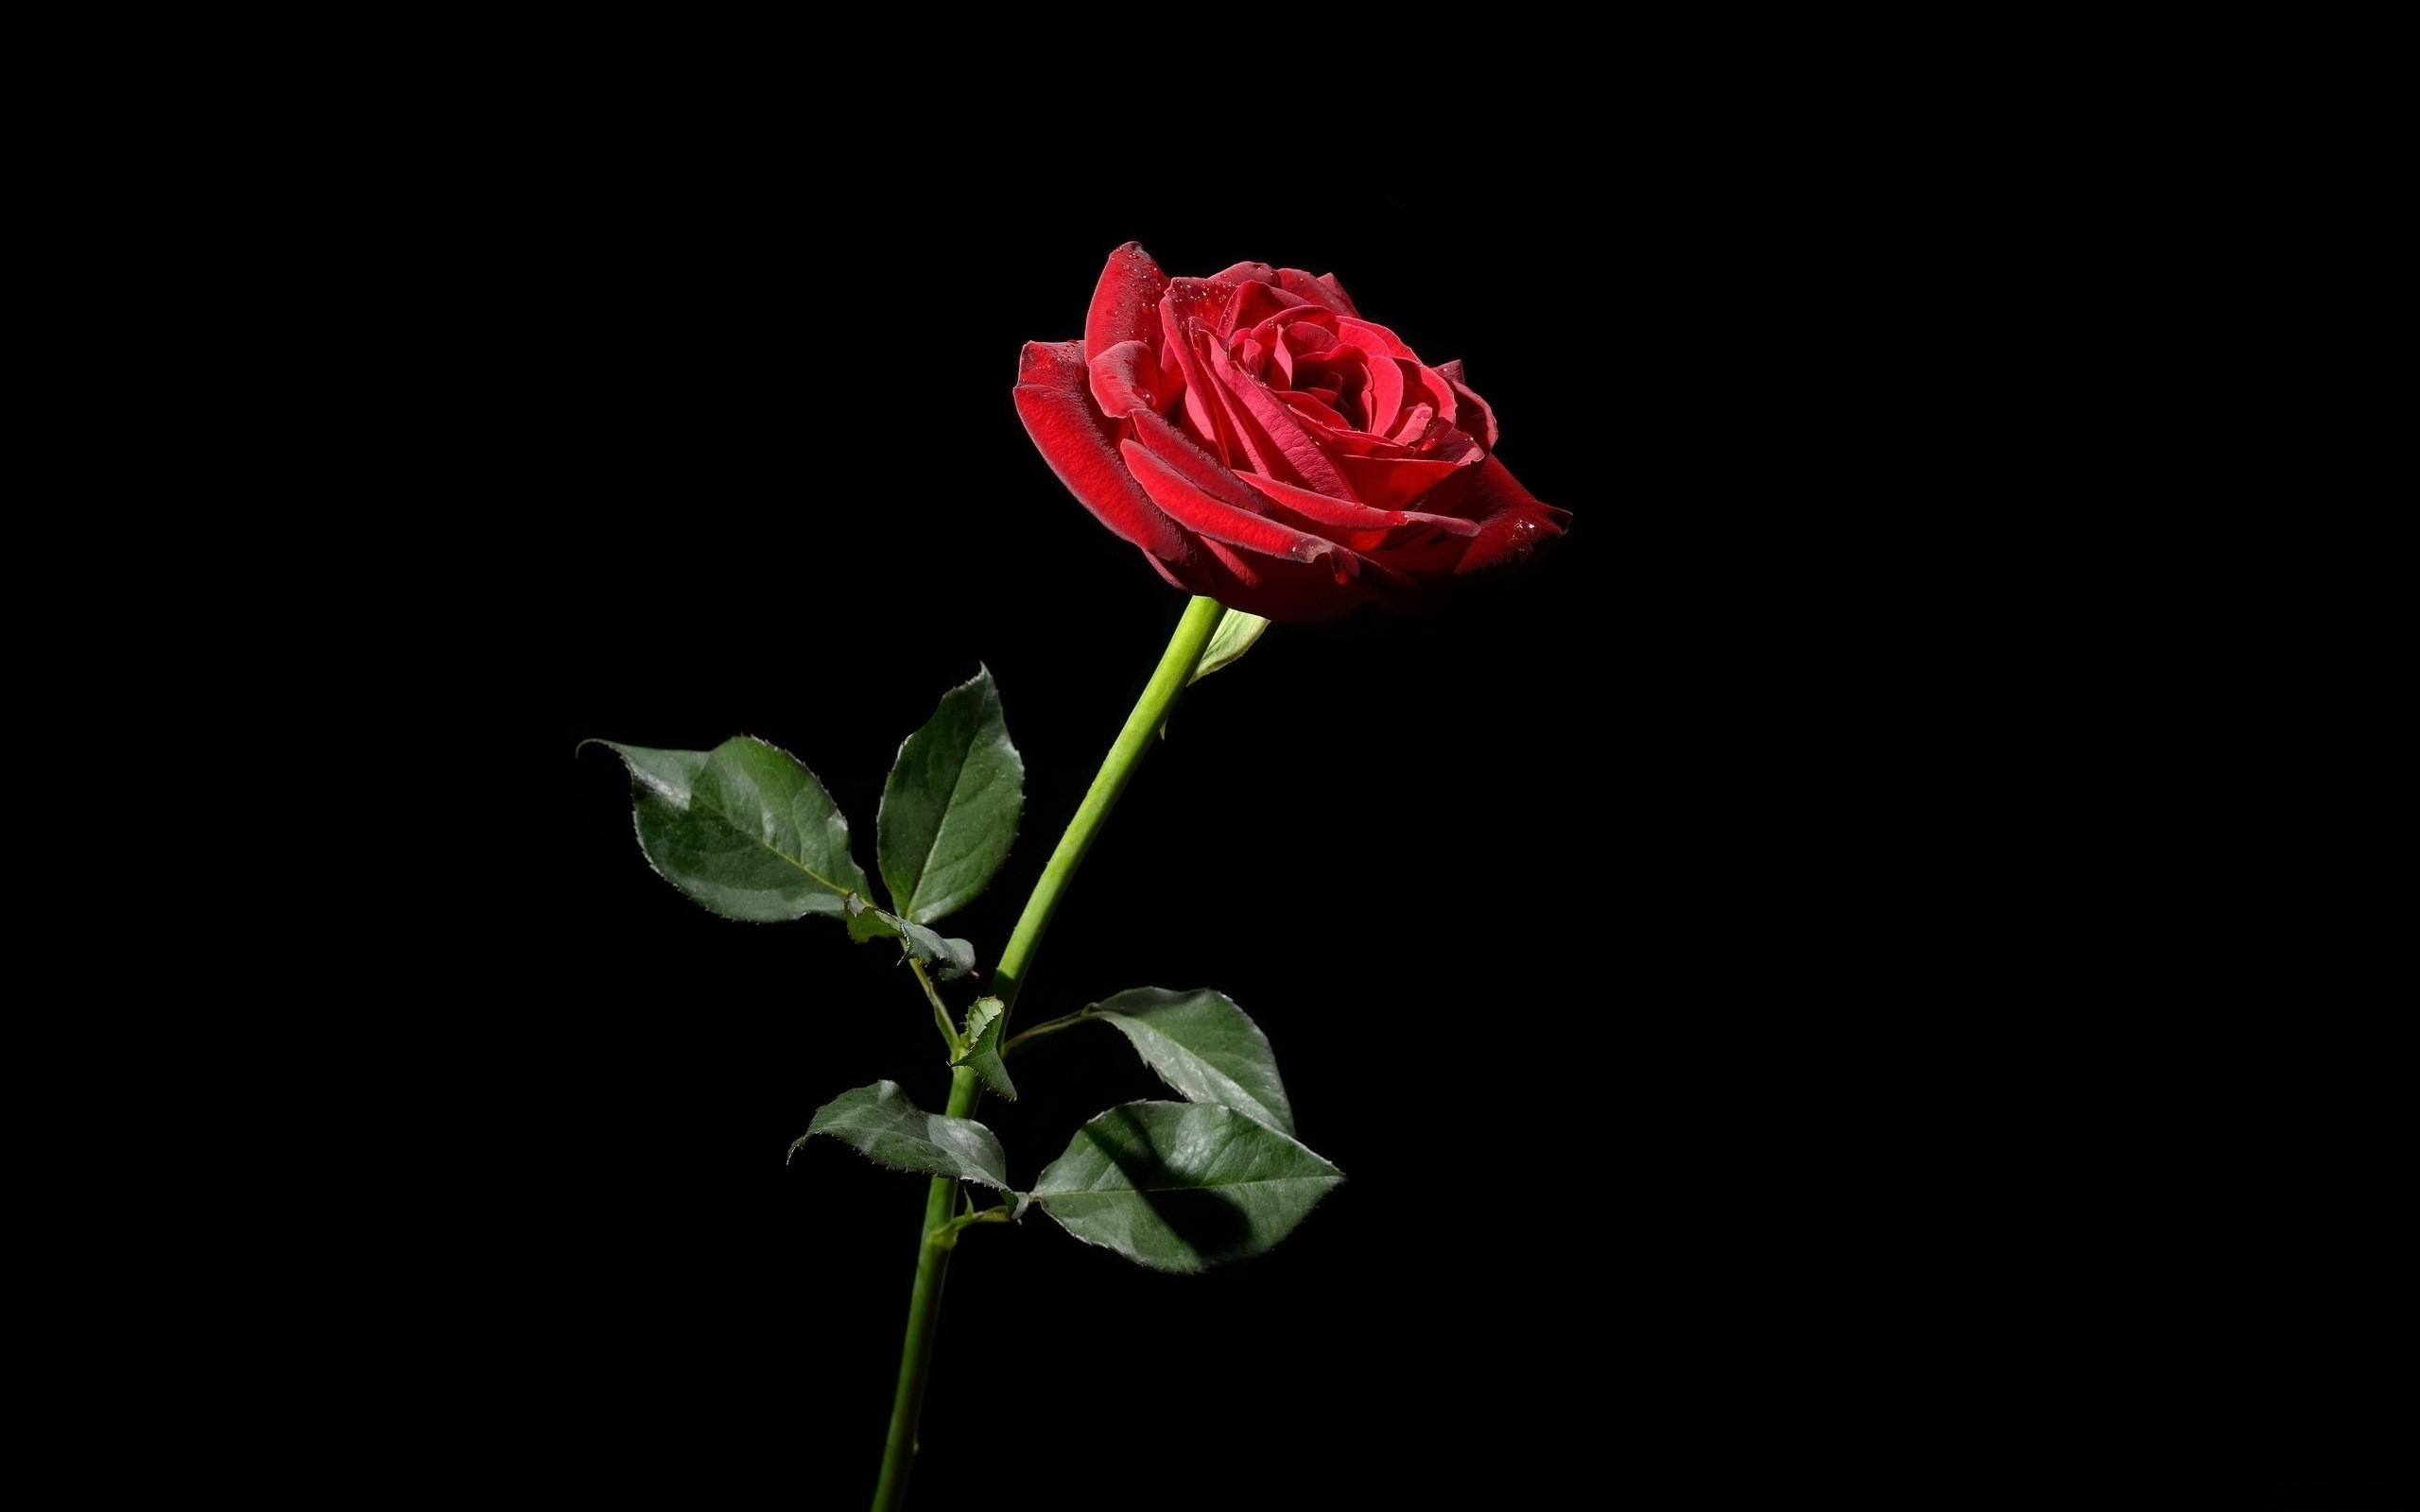 roses with black background (50+ images)